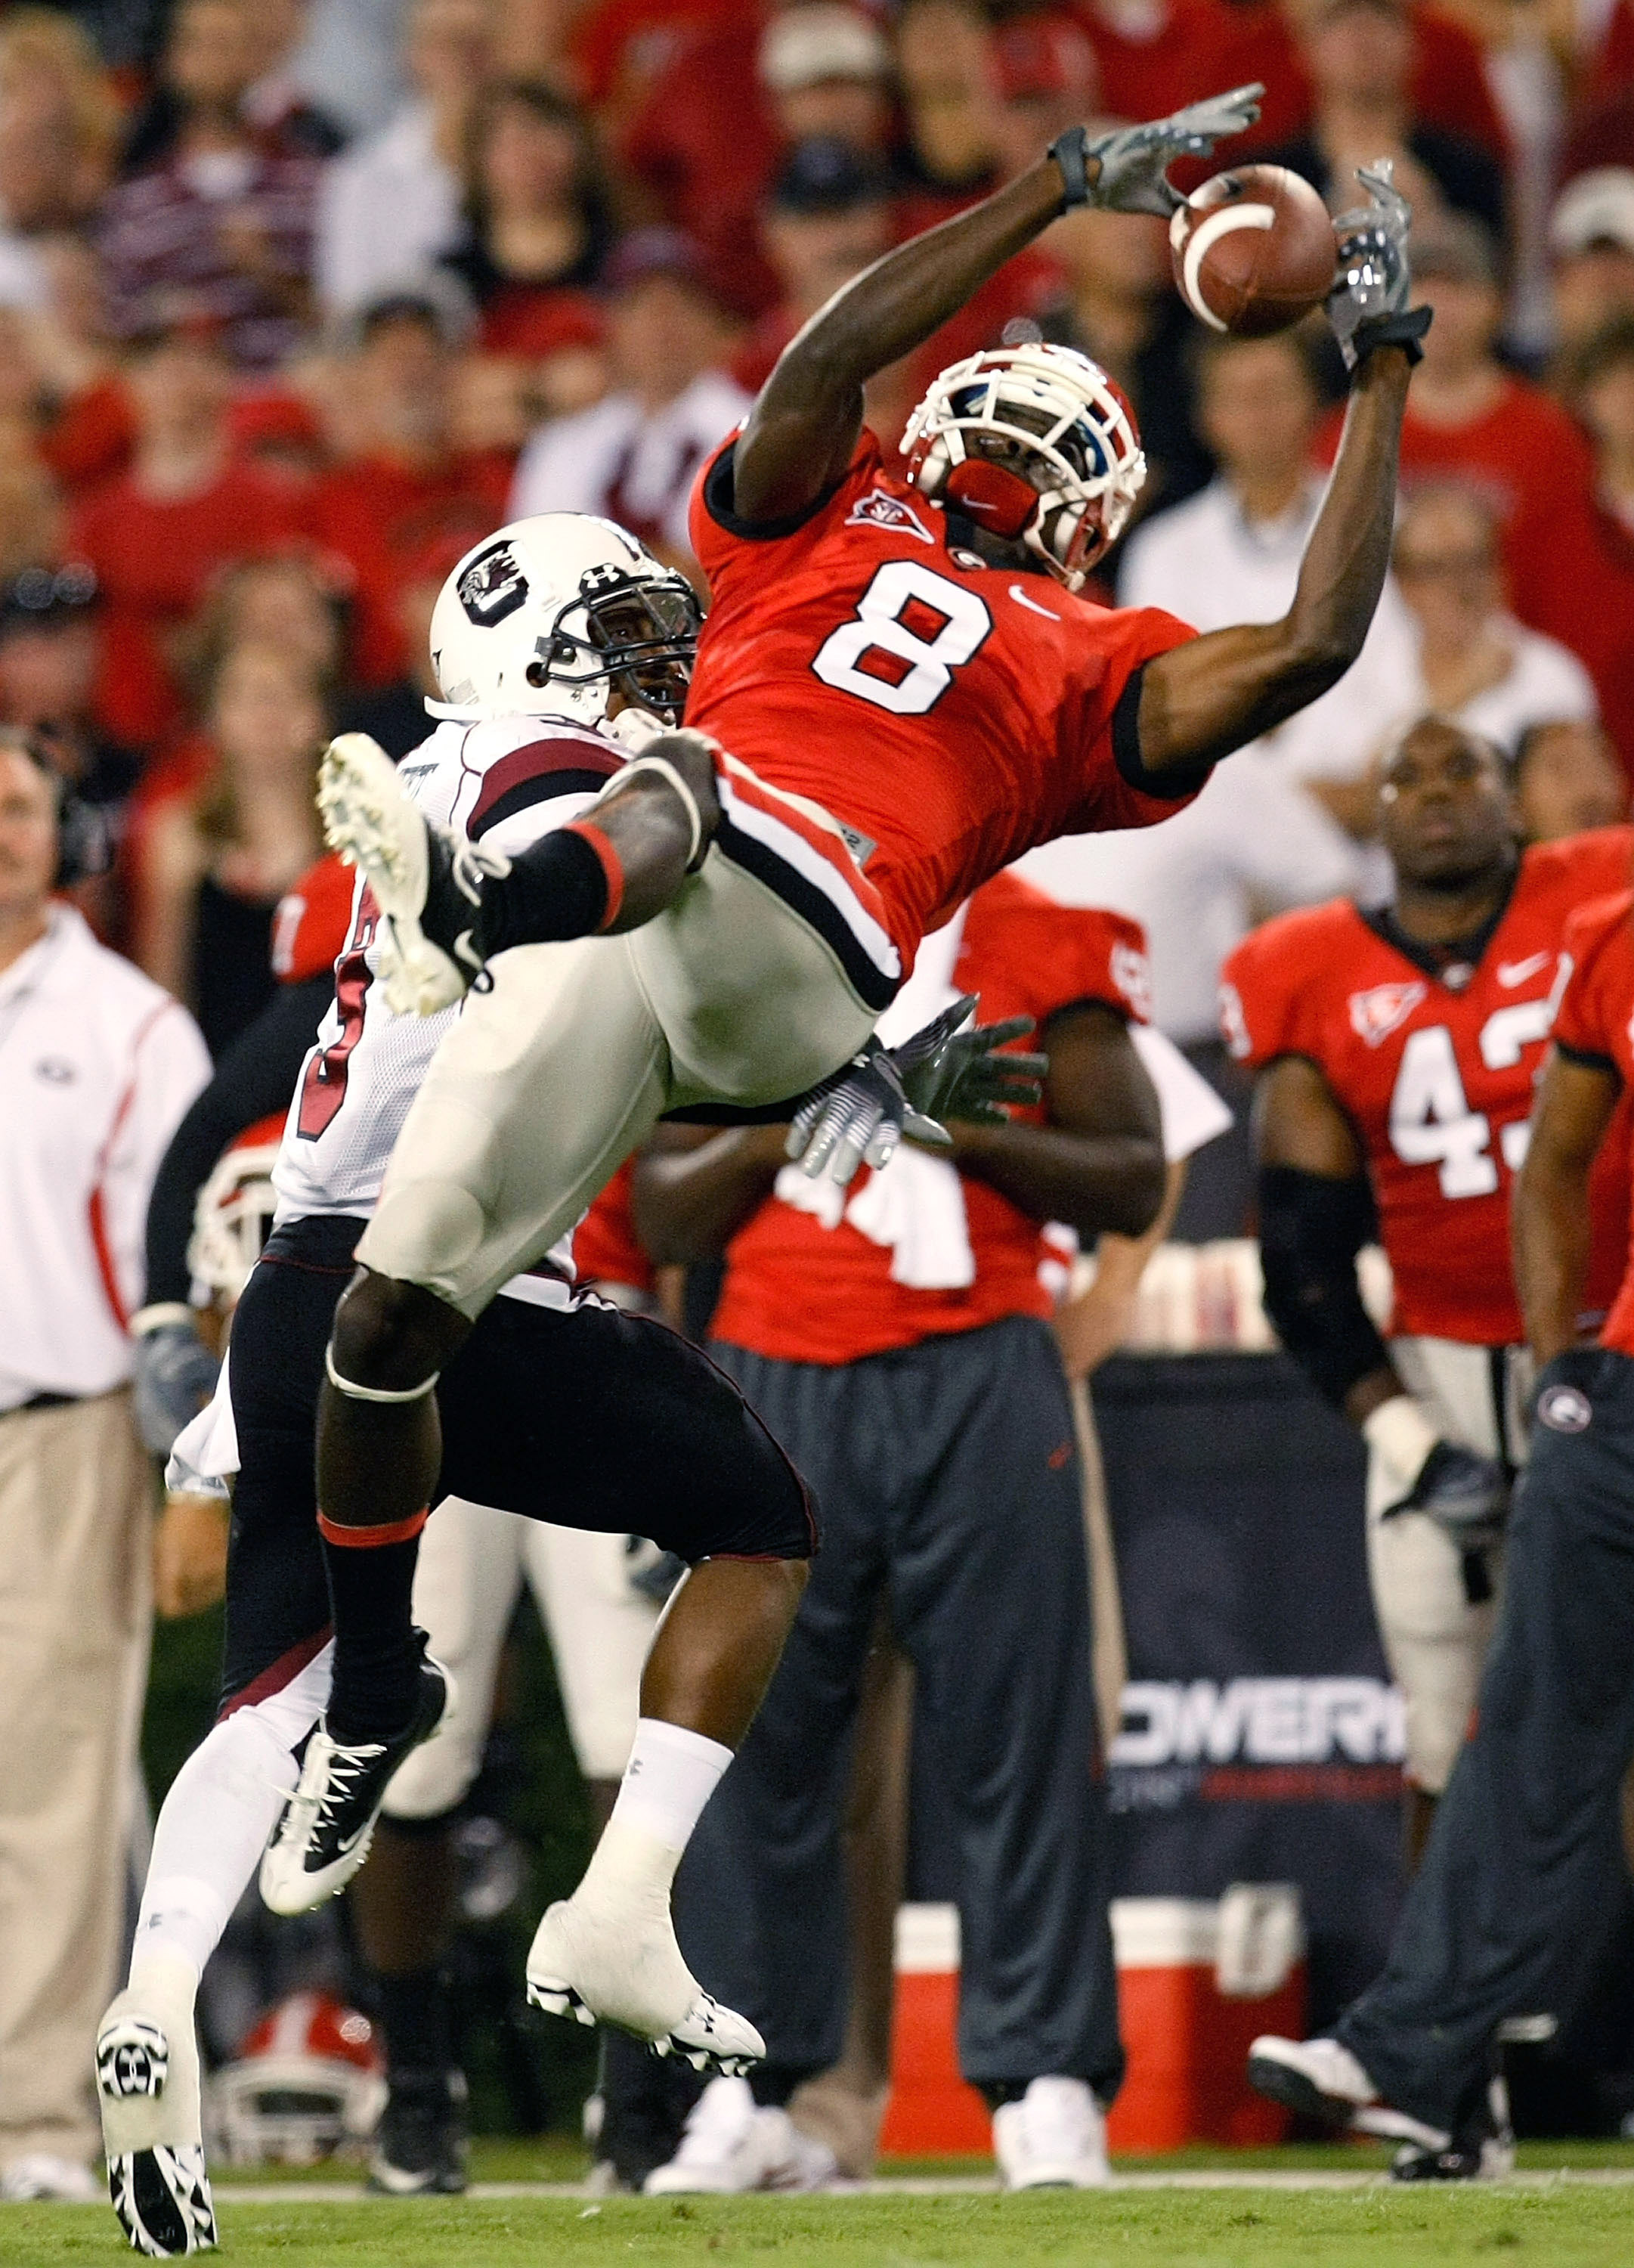 ATHENS, GA - SEPTEMBER 12:  A.J. Green #8 of the Georgia Bulldogs pulls in this reception against Akeem Auguste #3 of the South Carolina Gamecocks at Sanford Stadium on September 12, 2009 in Athens, Georgia.  (Photo by Kevin C. Cox/Getty Images)